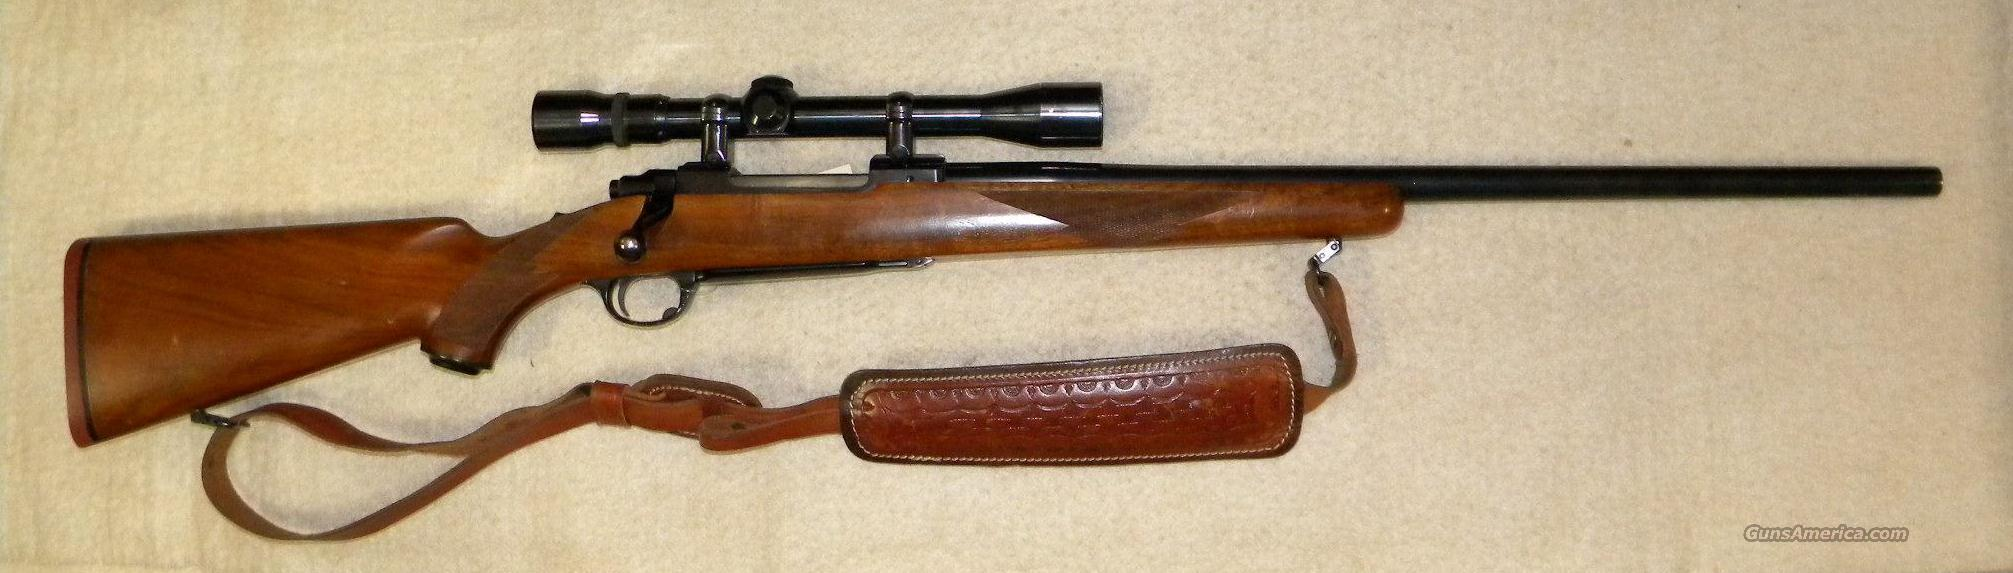 Old style Ruger M77V 25/06 Bull Barrel  Guns > Rifles > Ruger Rifles > Model 77